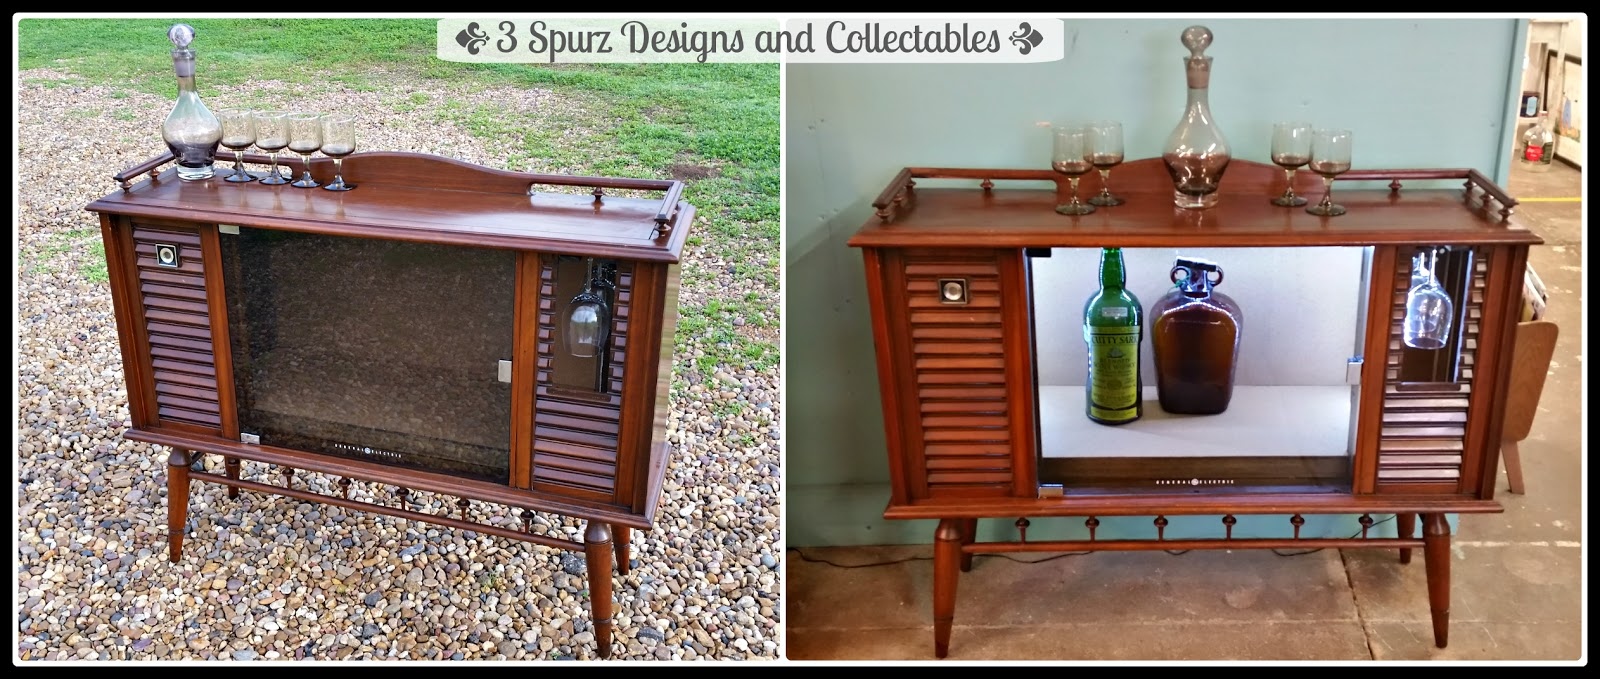 3 Spurz DandC Repurposed /Refurbished Creations!!: Mid Century TV Cabinet  Bar